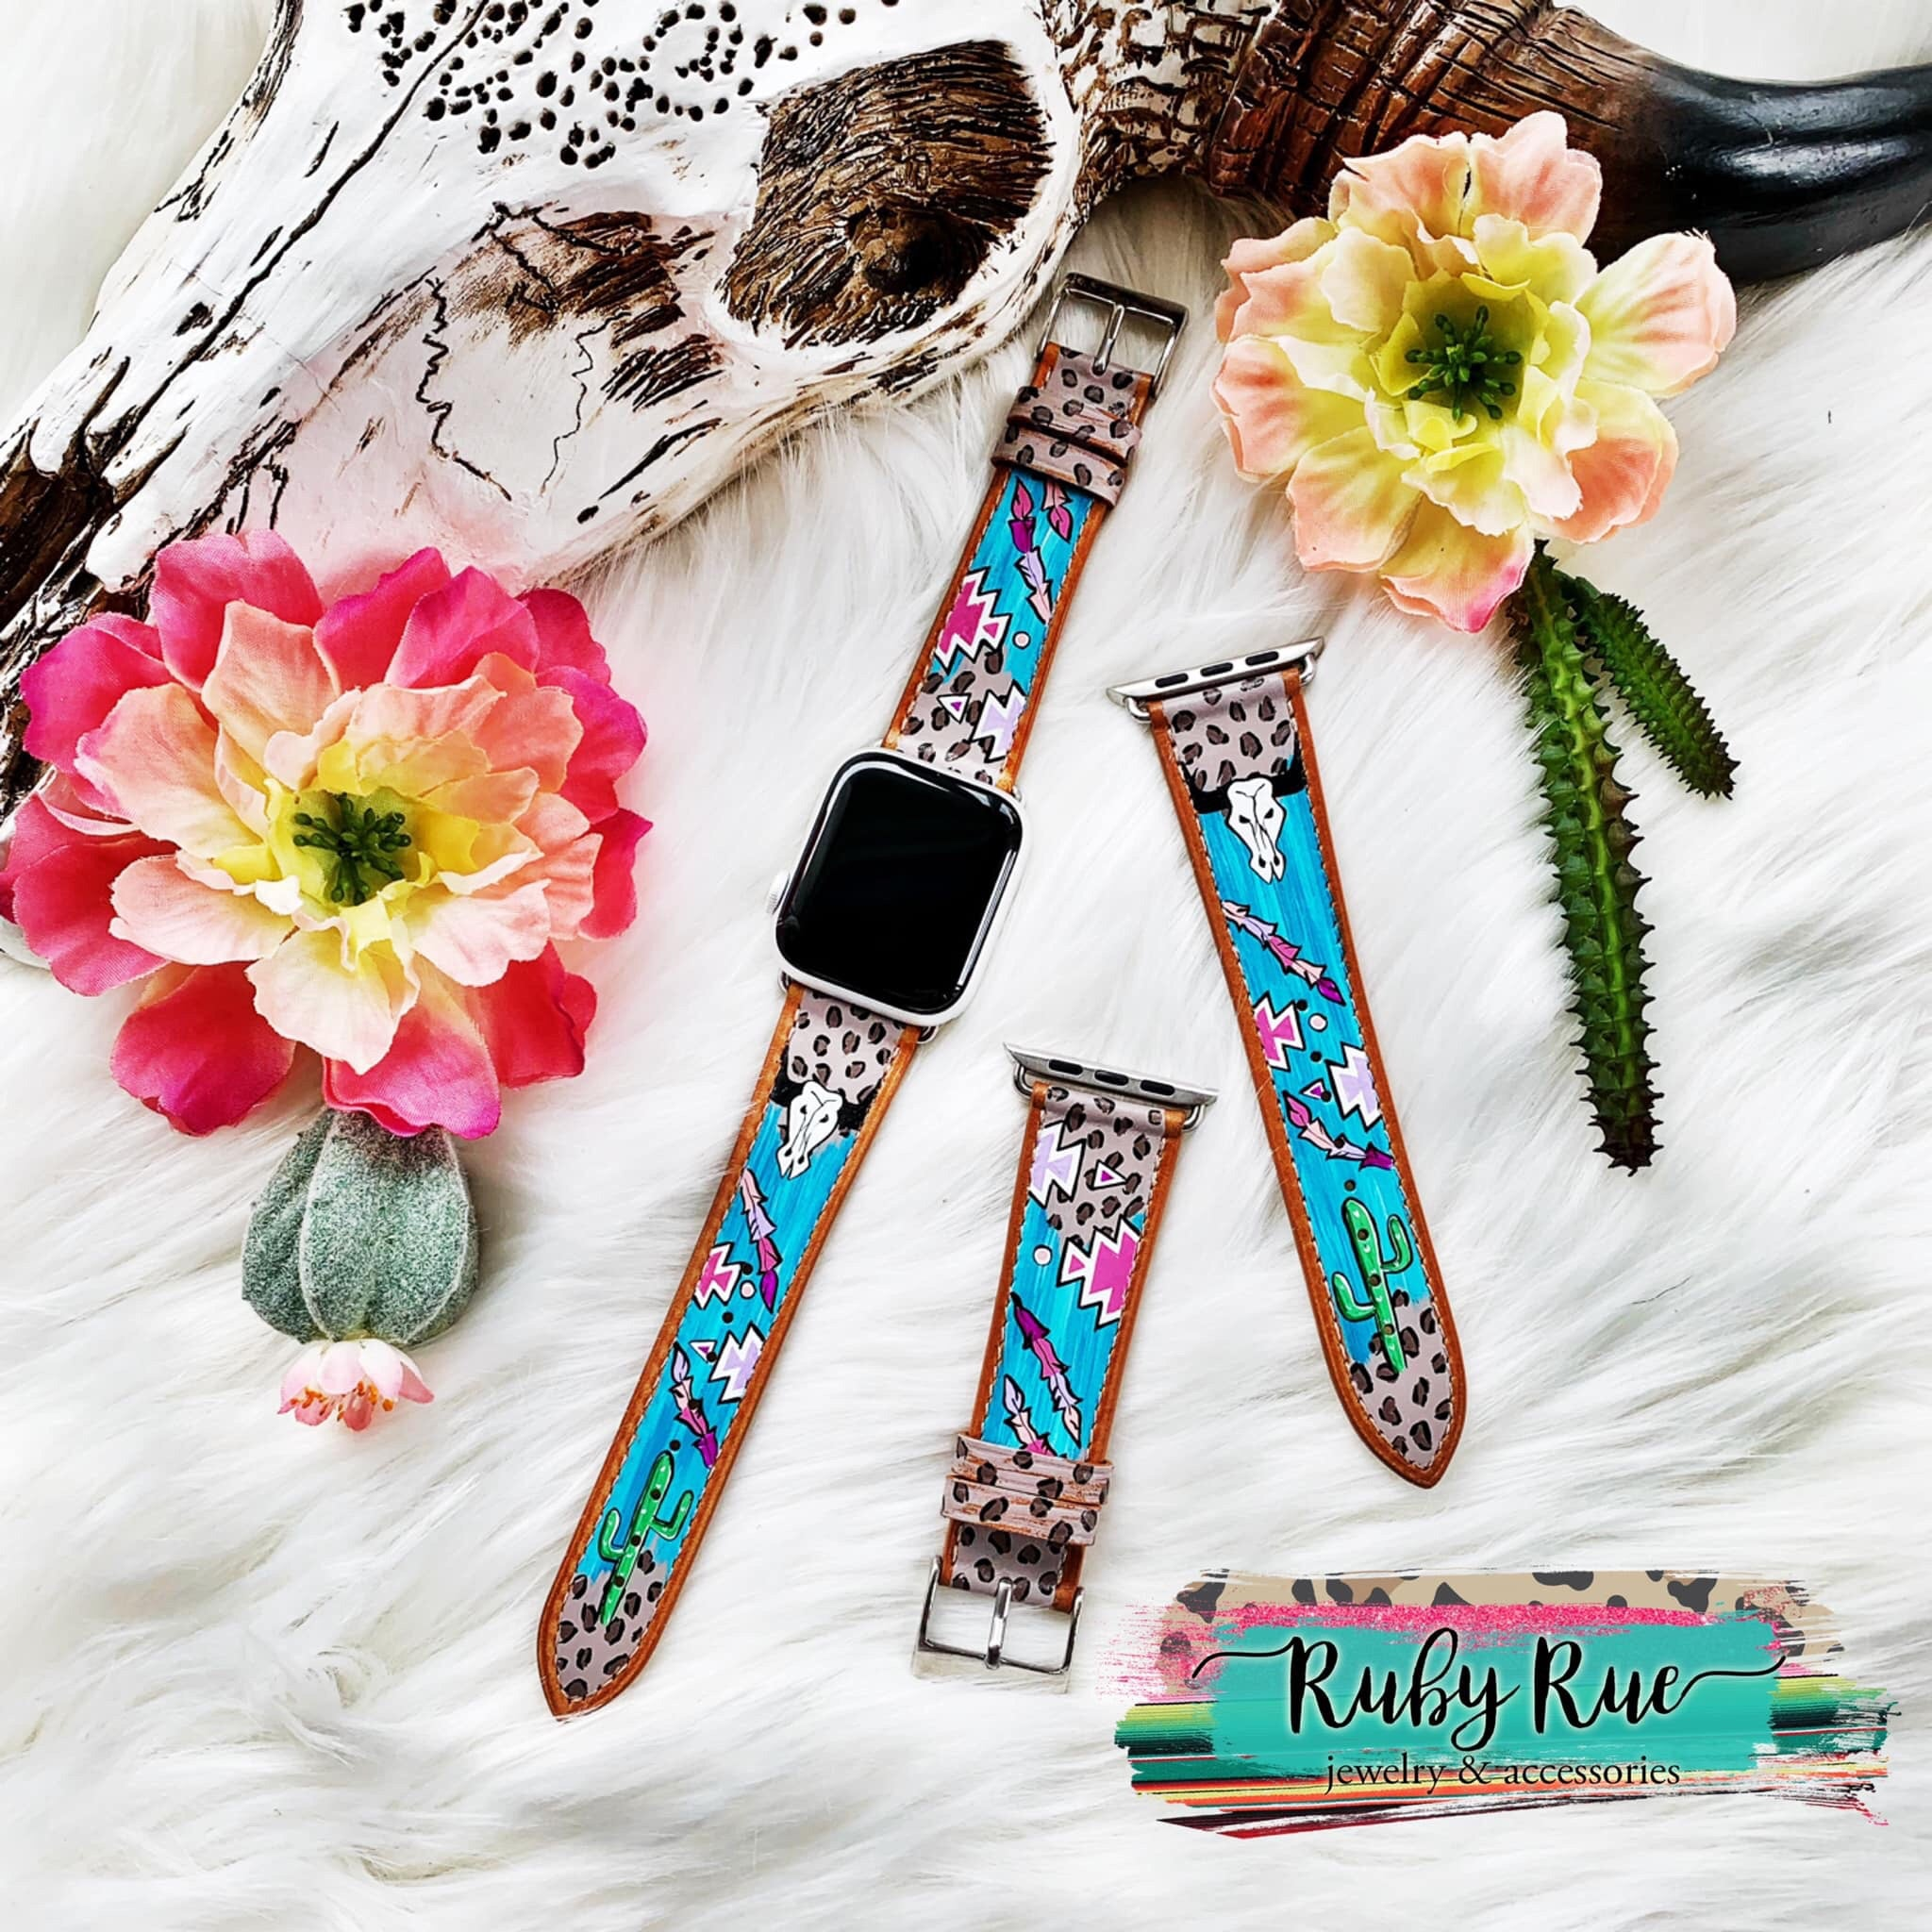 Hand painted Watch Bands - All Blinged Out/Calamity's